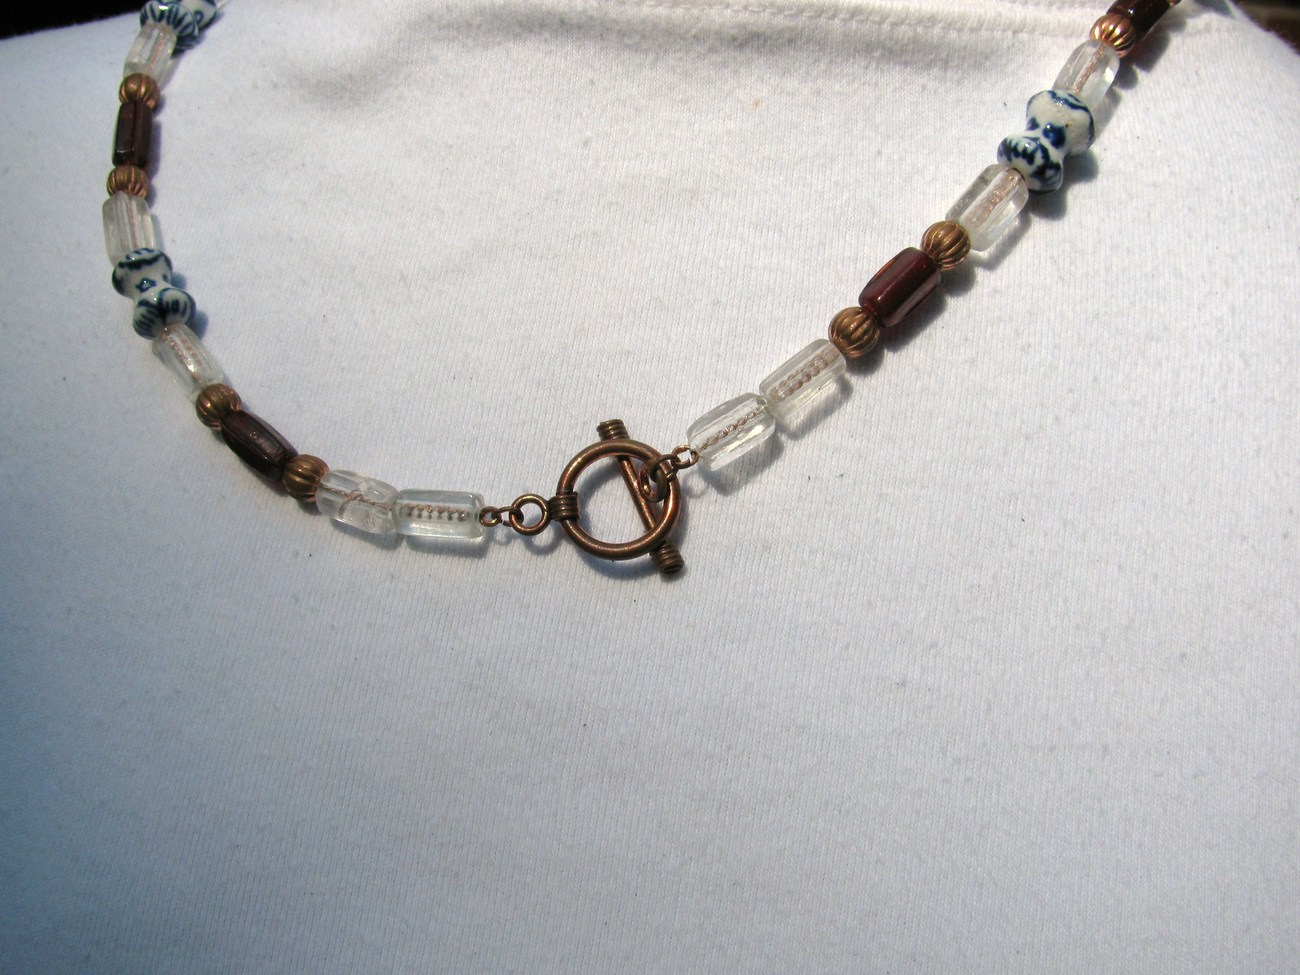 Copper Necklace with Glass and Ceramic Beads RKM169